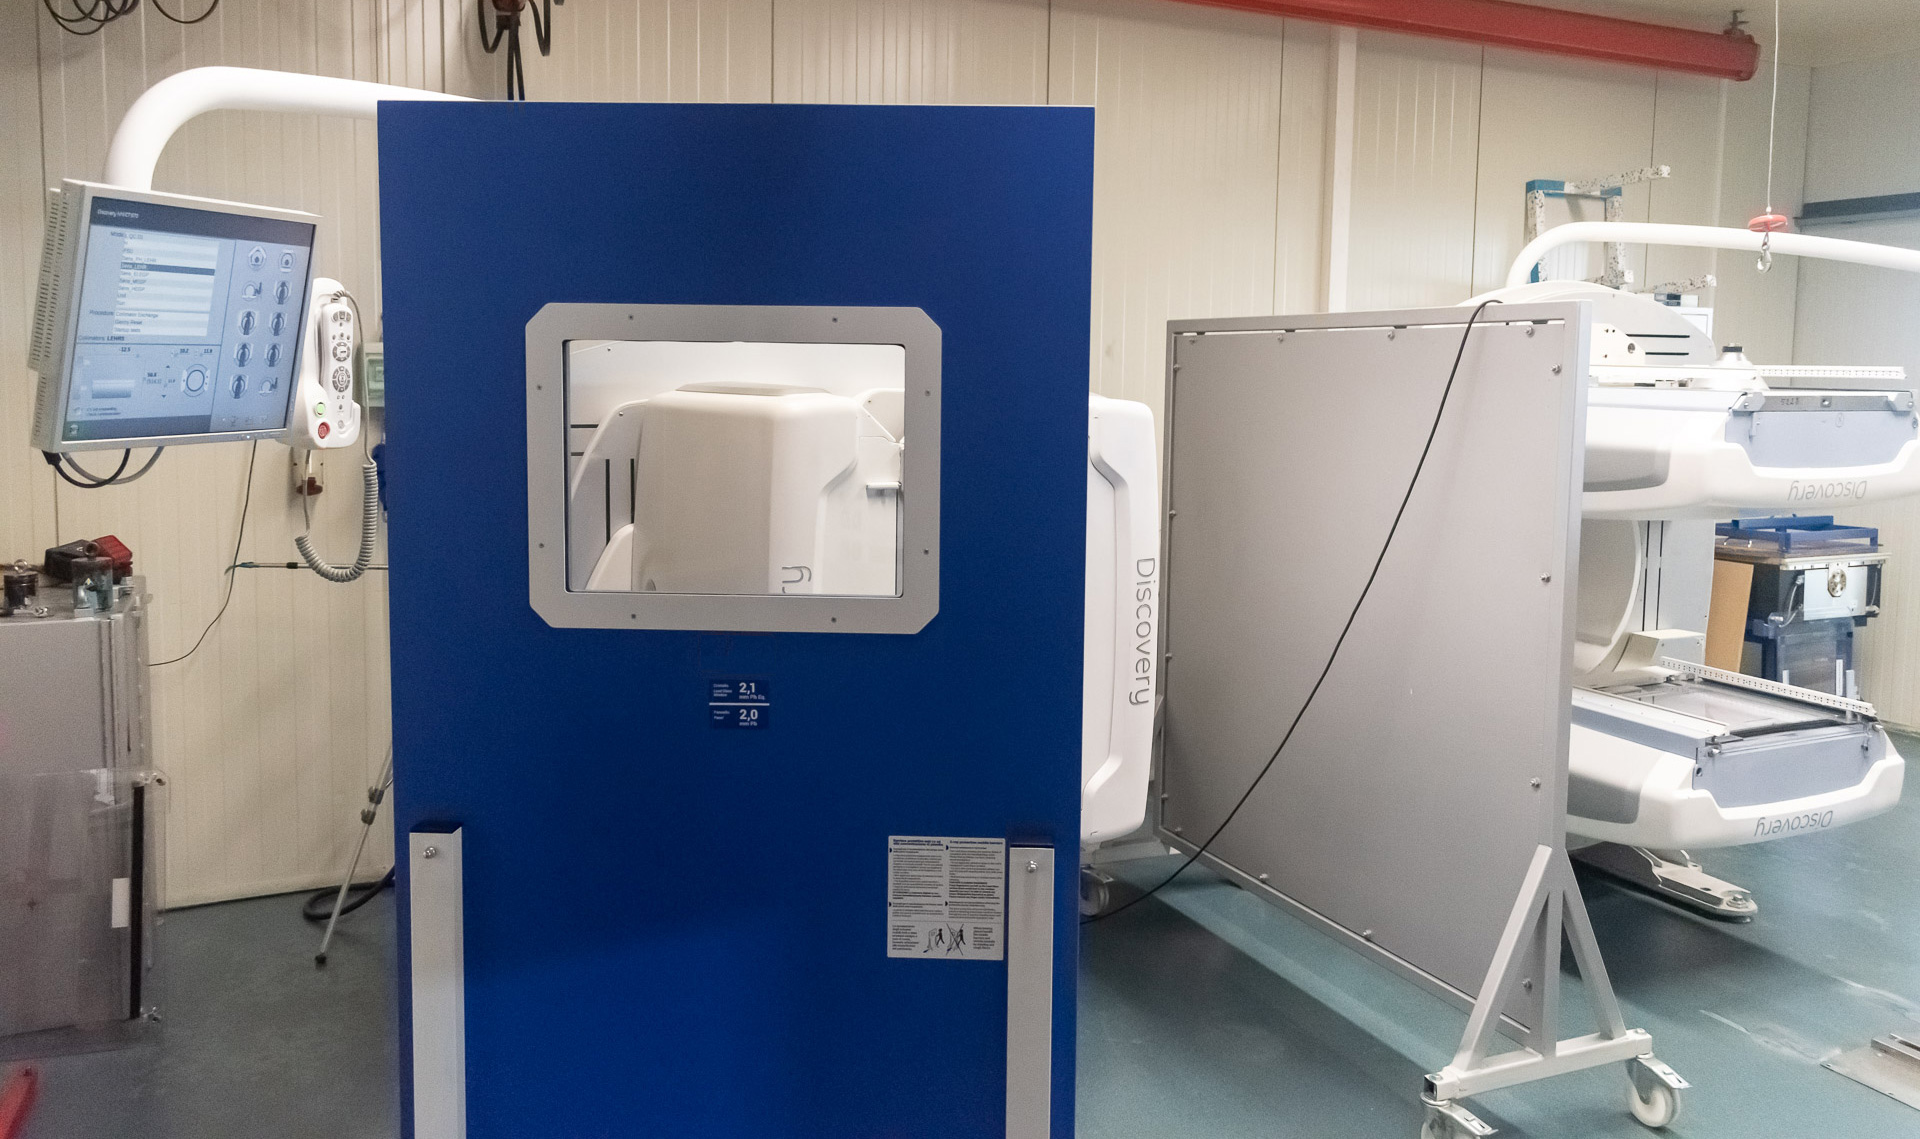 Mobile x-ray barrier MXBS32-22 - Nuclear Shields